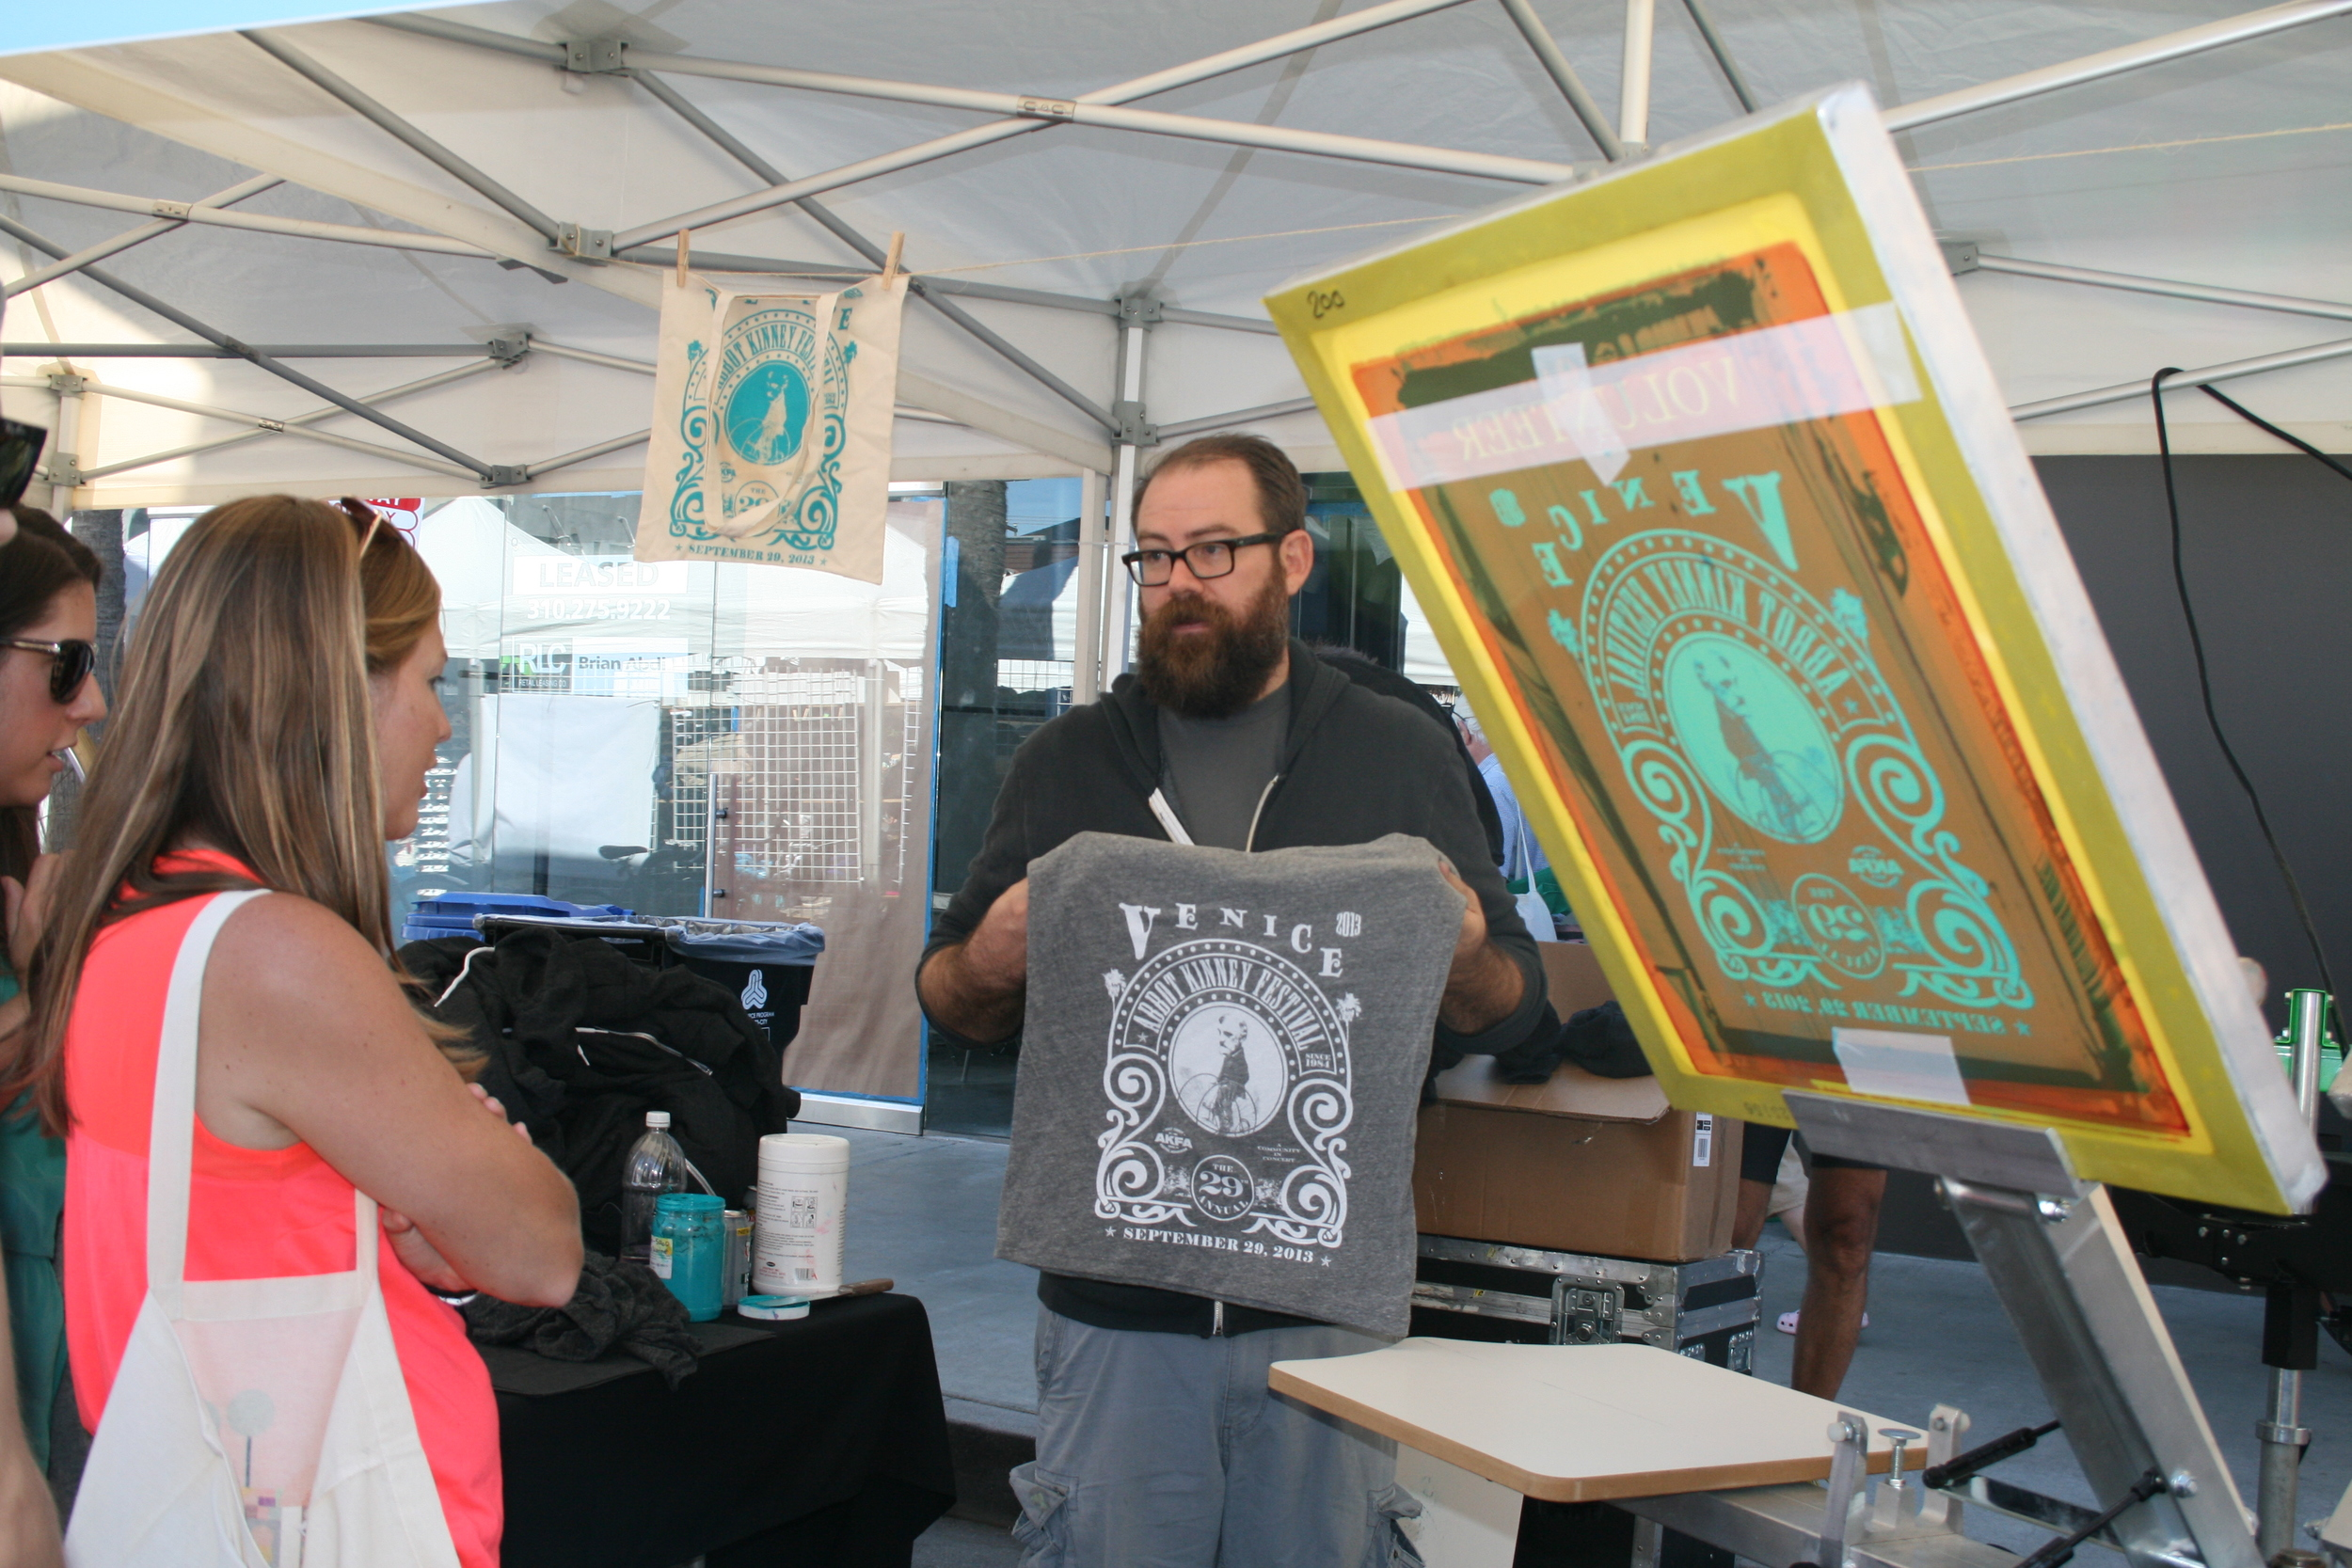 Abbot Kinney Festival merch table with live screen printing. (Photo by Kathy Urso)